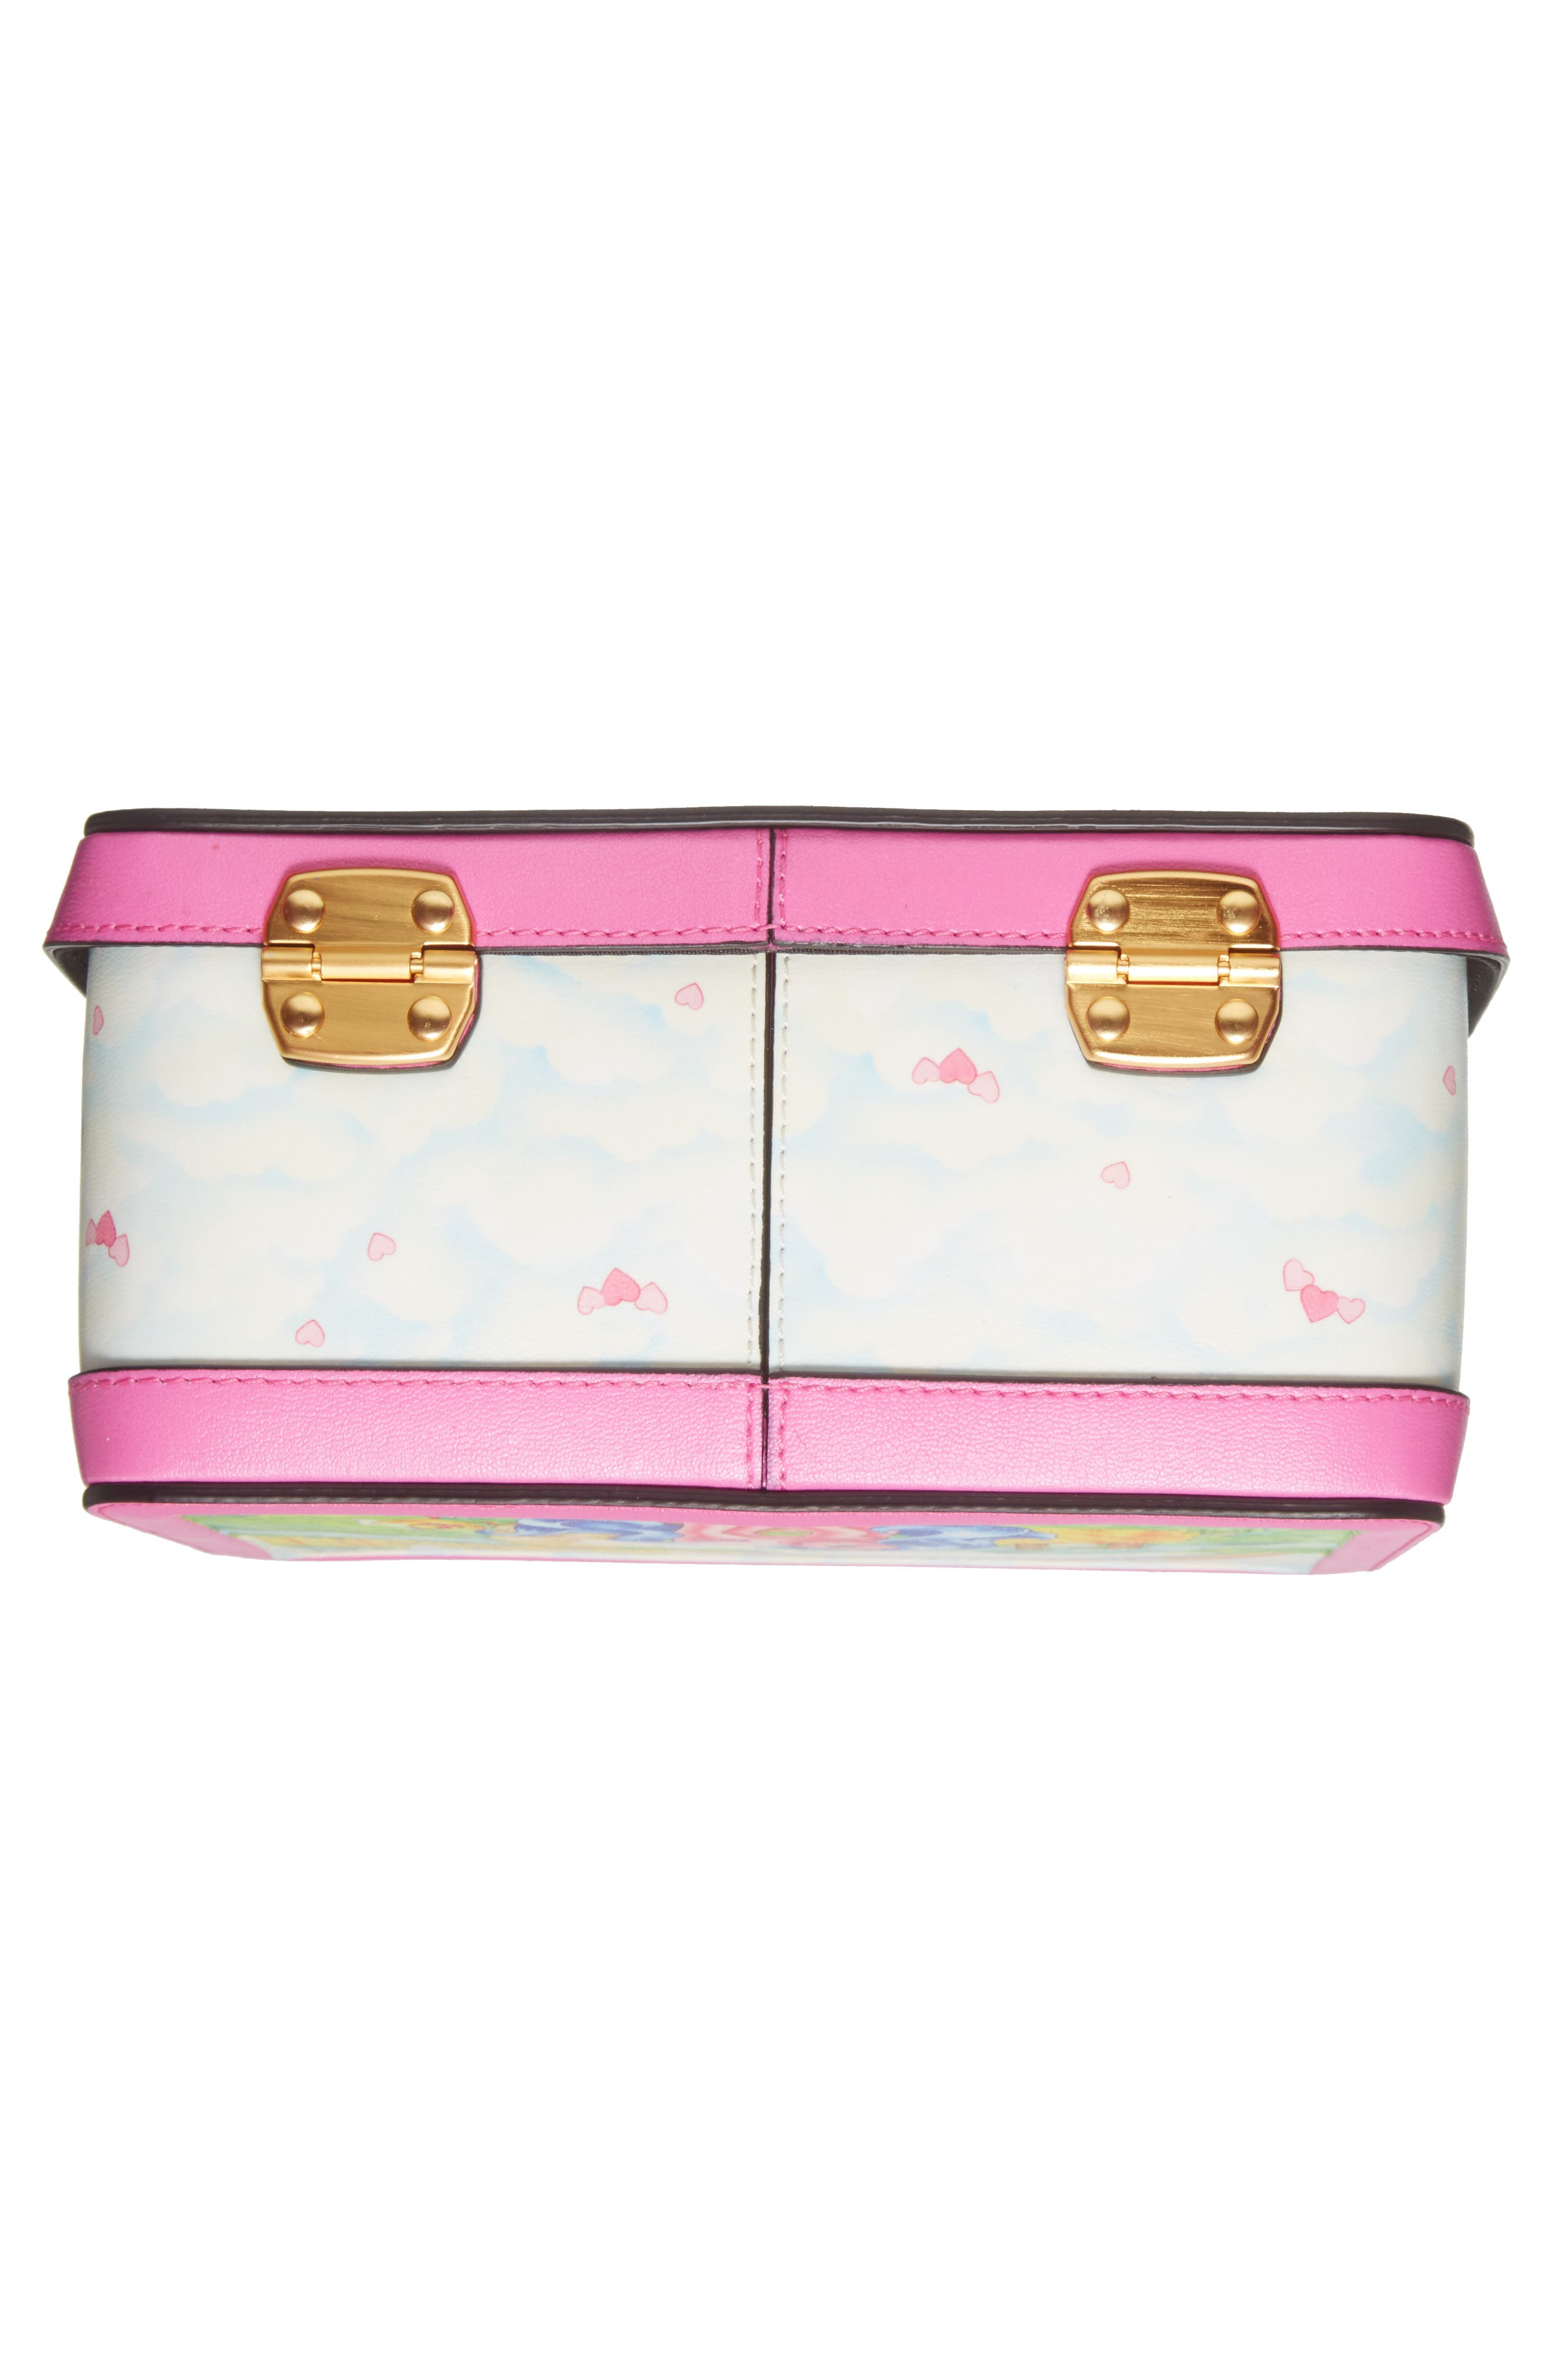 x My Little Pony Leather Lunch Box,                             Alternate thumbnail 6, color,                             650